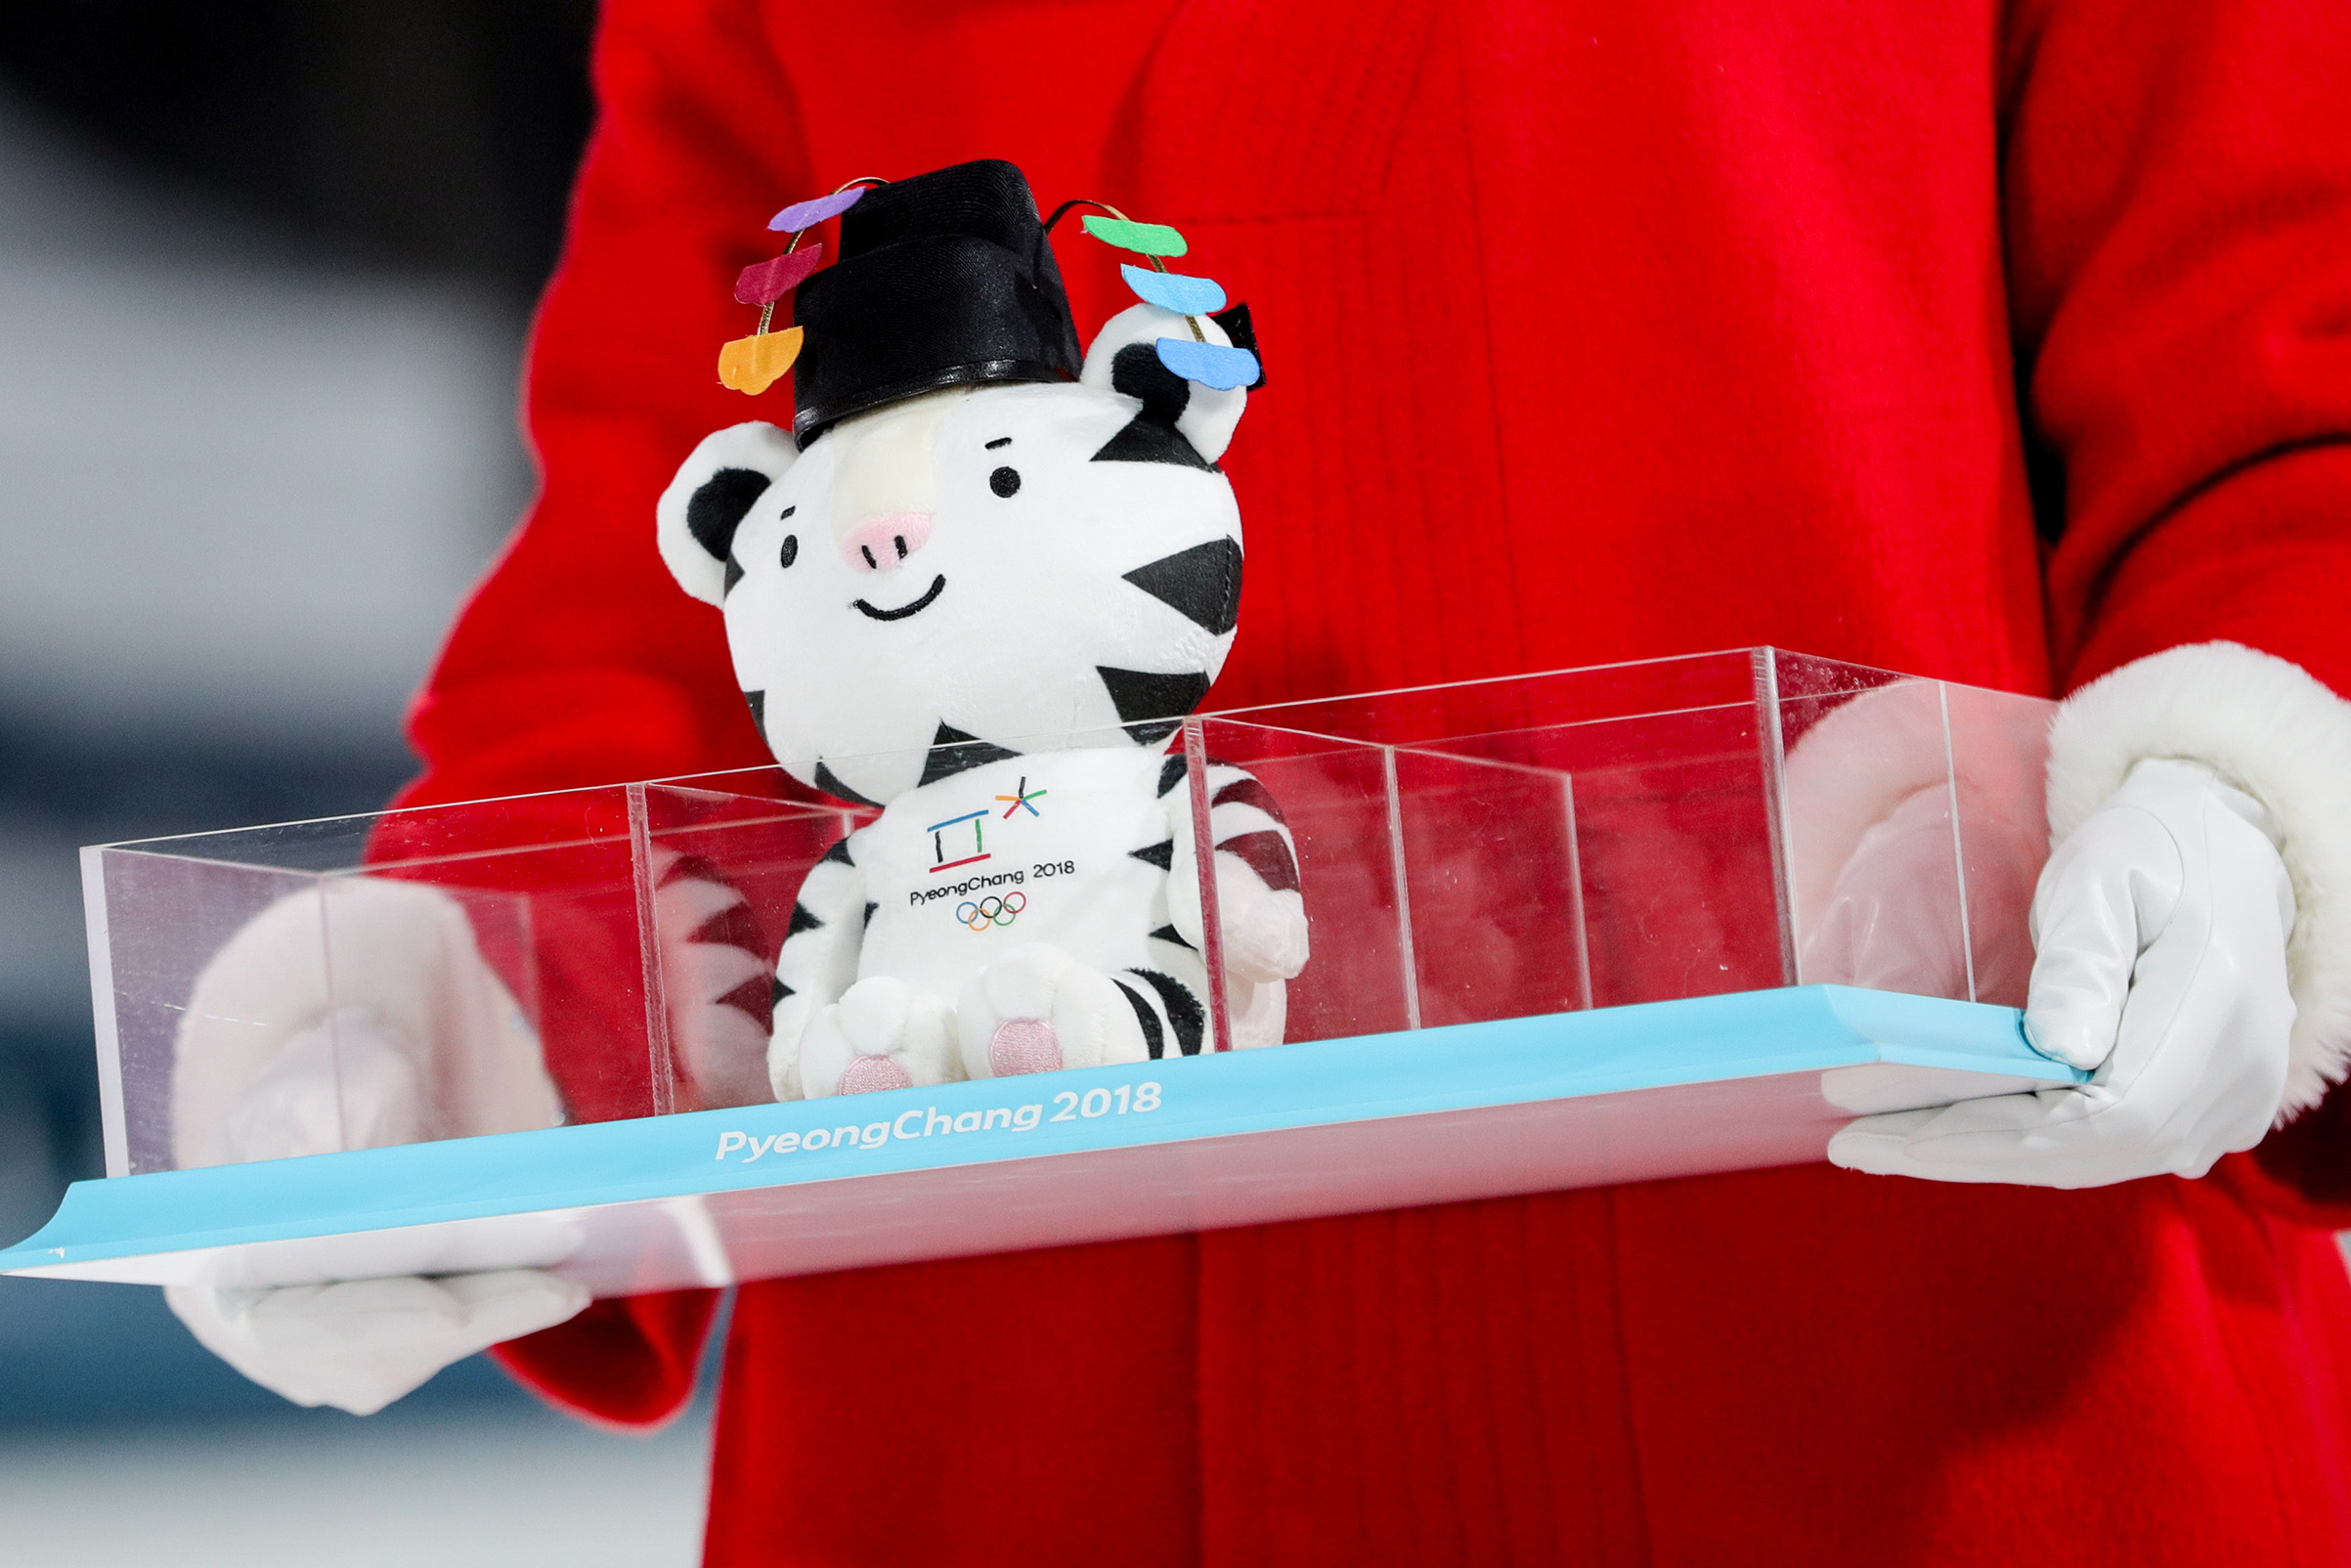 A plush toy of the PyeongChang 2018 Winter Olympic Games mascot Soohorang at a flower ceremony for the ladies' cross-country skiing individual sprint classic event during the 2018 Winter Olympic Games, at the Alpensia Cross-Country Skiing Centre